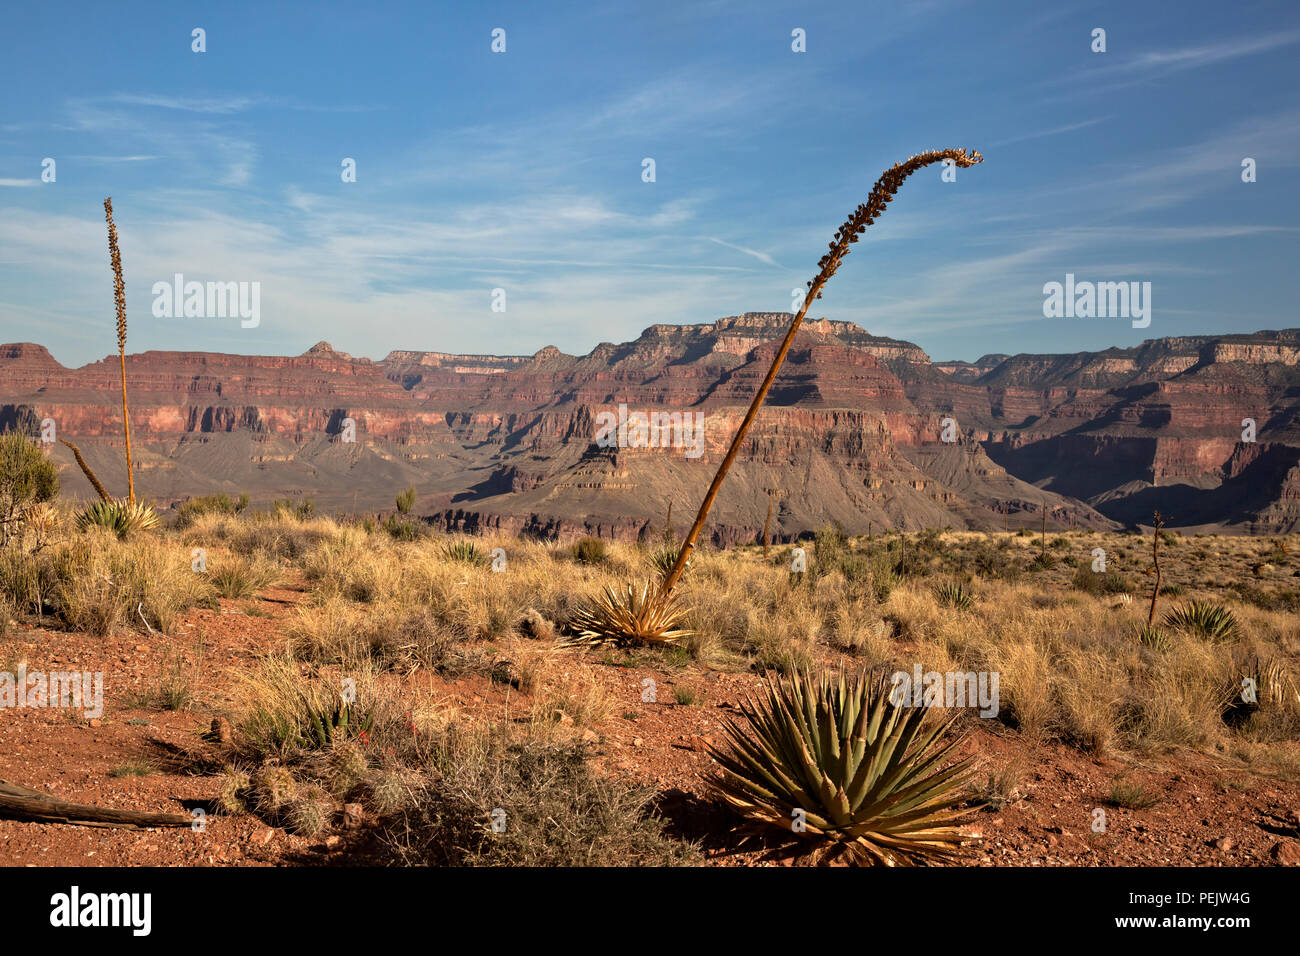 AZ00282-00...ARIZONA -Desert vegetation along the trail in the Cedar Ridge area, a popular rest stop along the South Kaibab Trail in Grand Canyon NP. - Stock Image